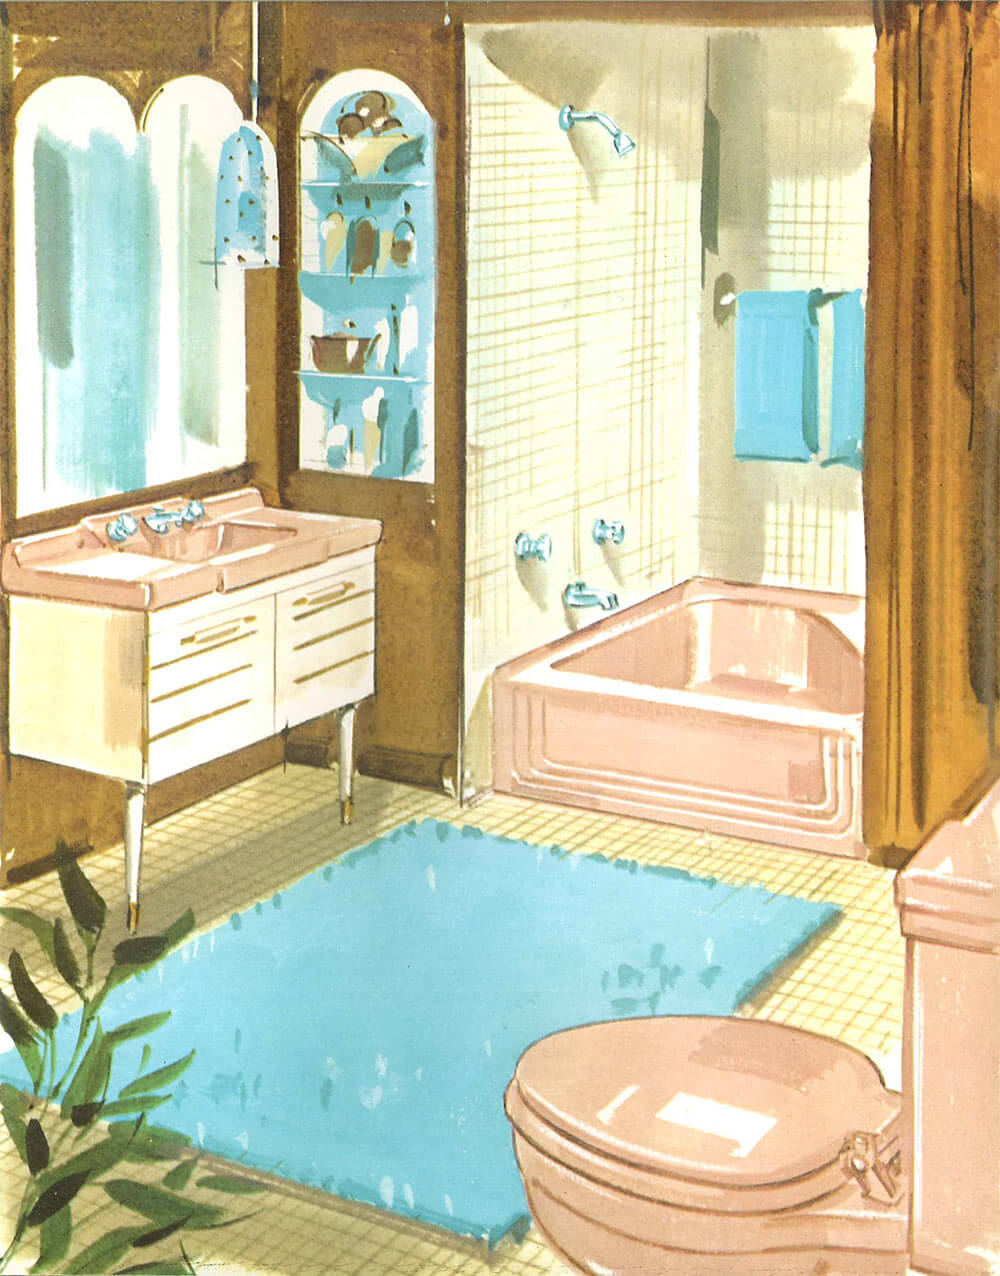 Bathroom Sinks Toilets And Tubs the color pink in bathroom sinks, tubs and toilets - from 1927